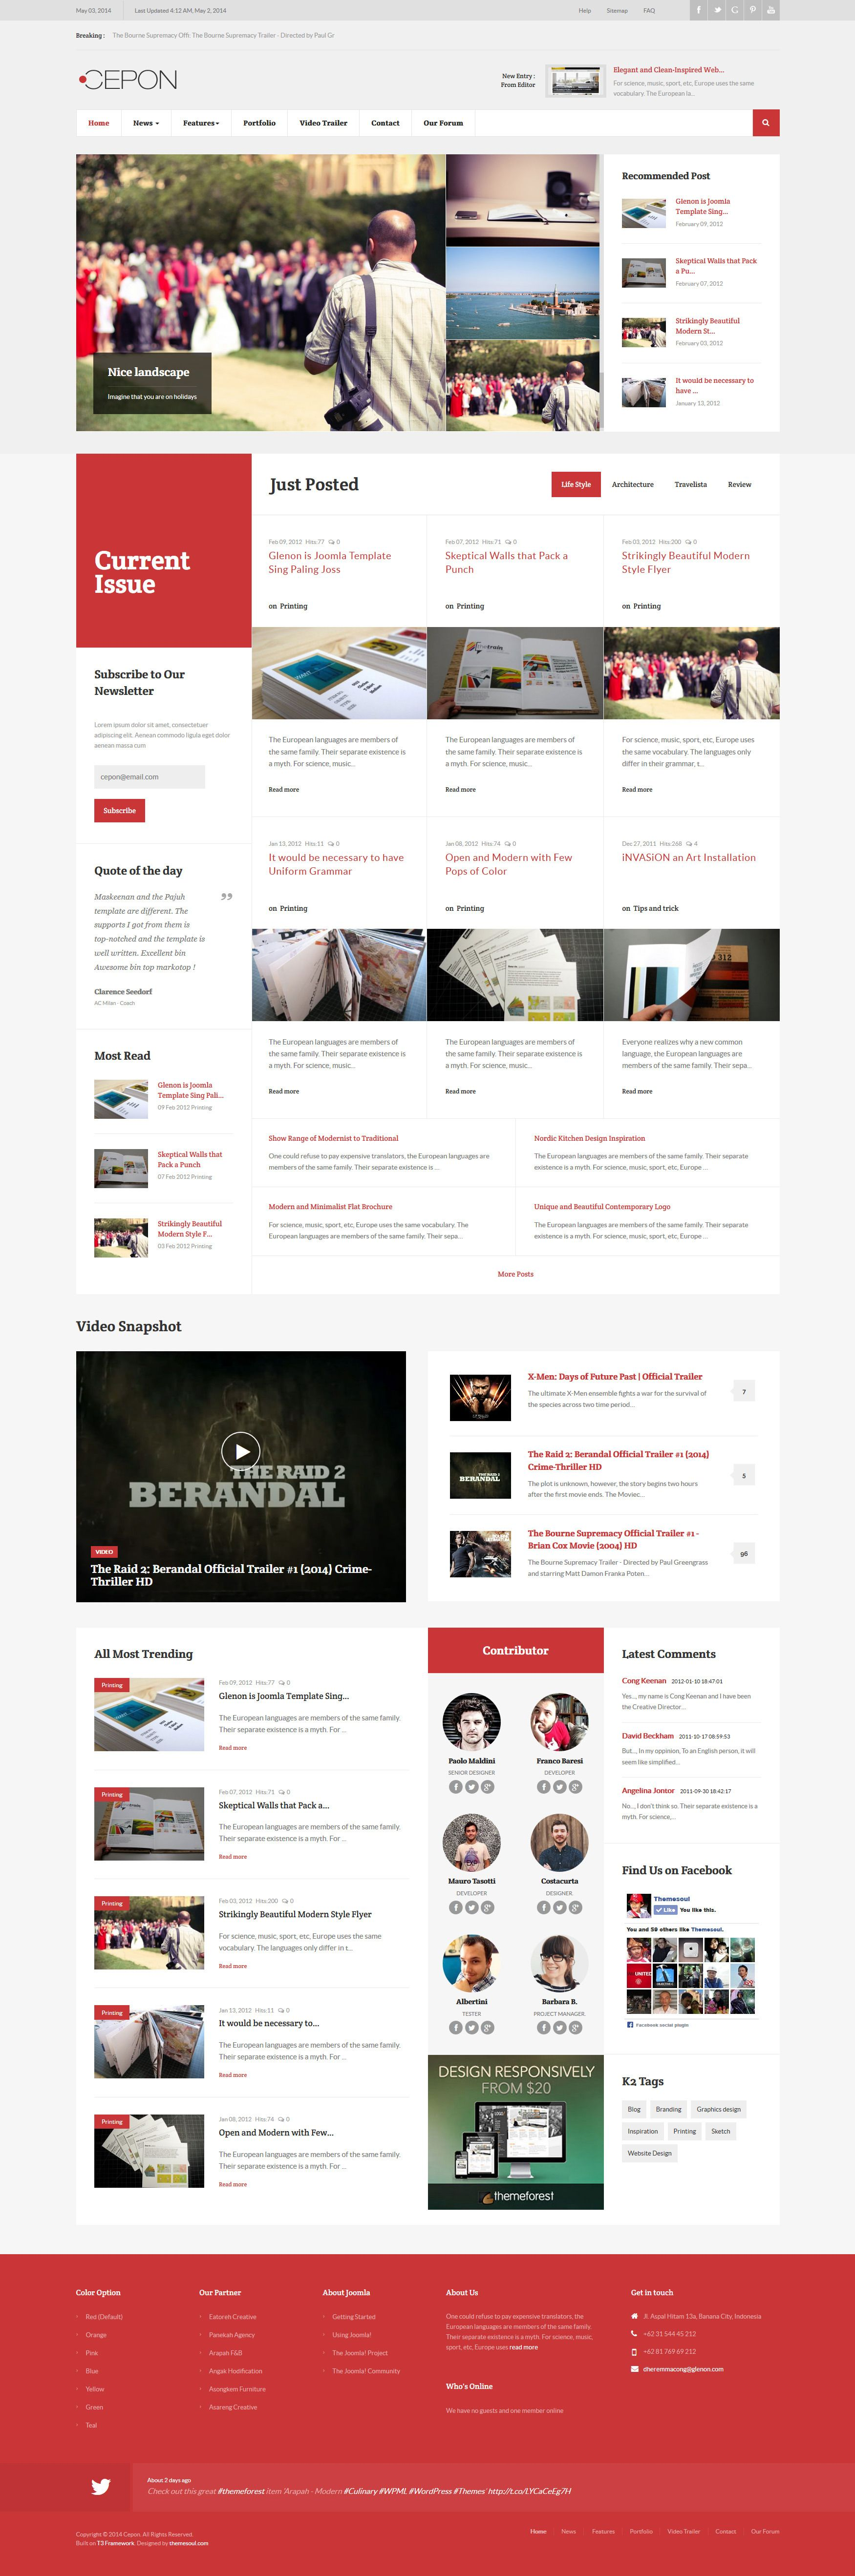 Cepon - News and Magazine WordPress Themes | Buy and Download: http://themeforest.net/item/cepon-news-and-magazine-wordpress-themes/8179635?WT.ac=category_thumb&WT.z_author=maskeenan&ref=ksioks